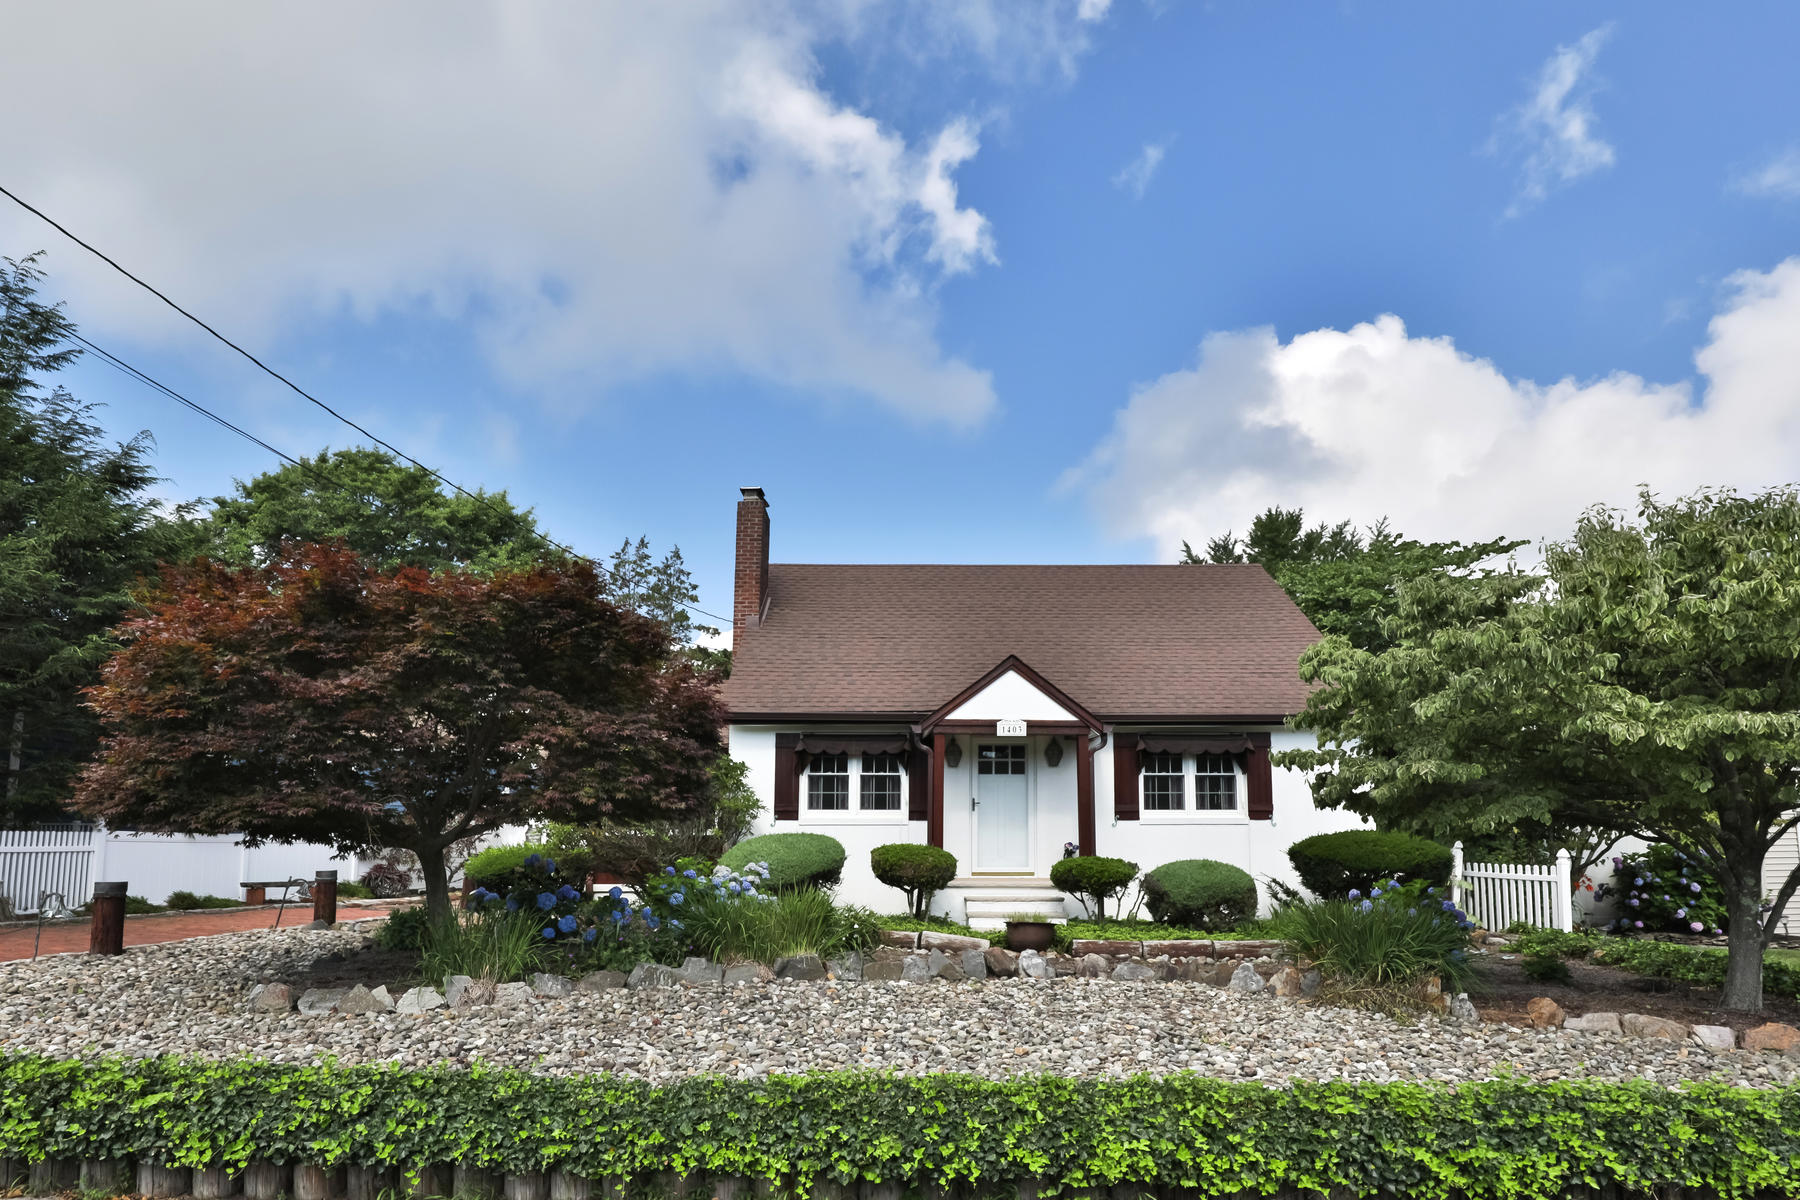 Single Family Homes for Active at Story Book Cottage Located On Oversized Lot 1403 Juliette Drive Belmar, New Jersey 07719 United States